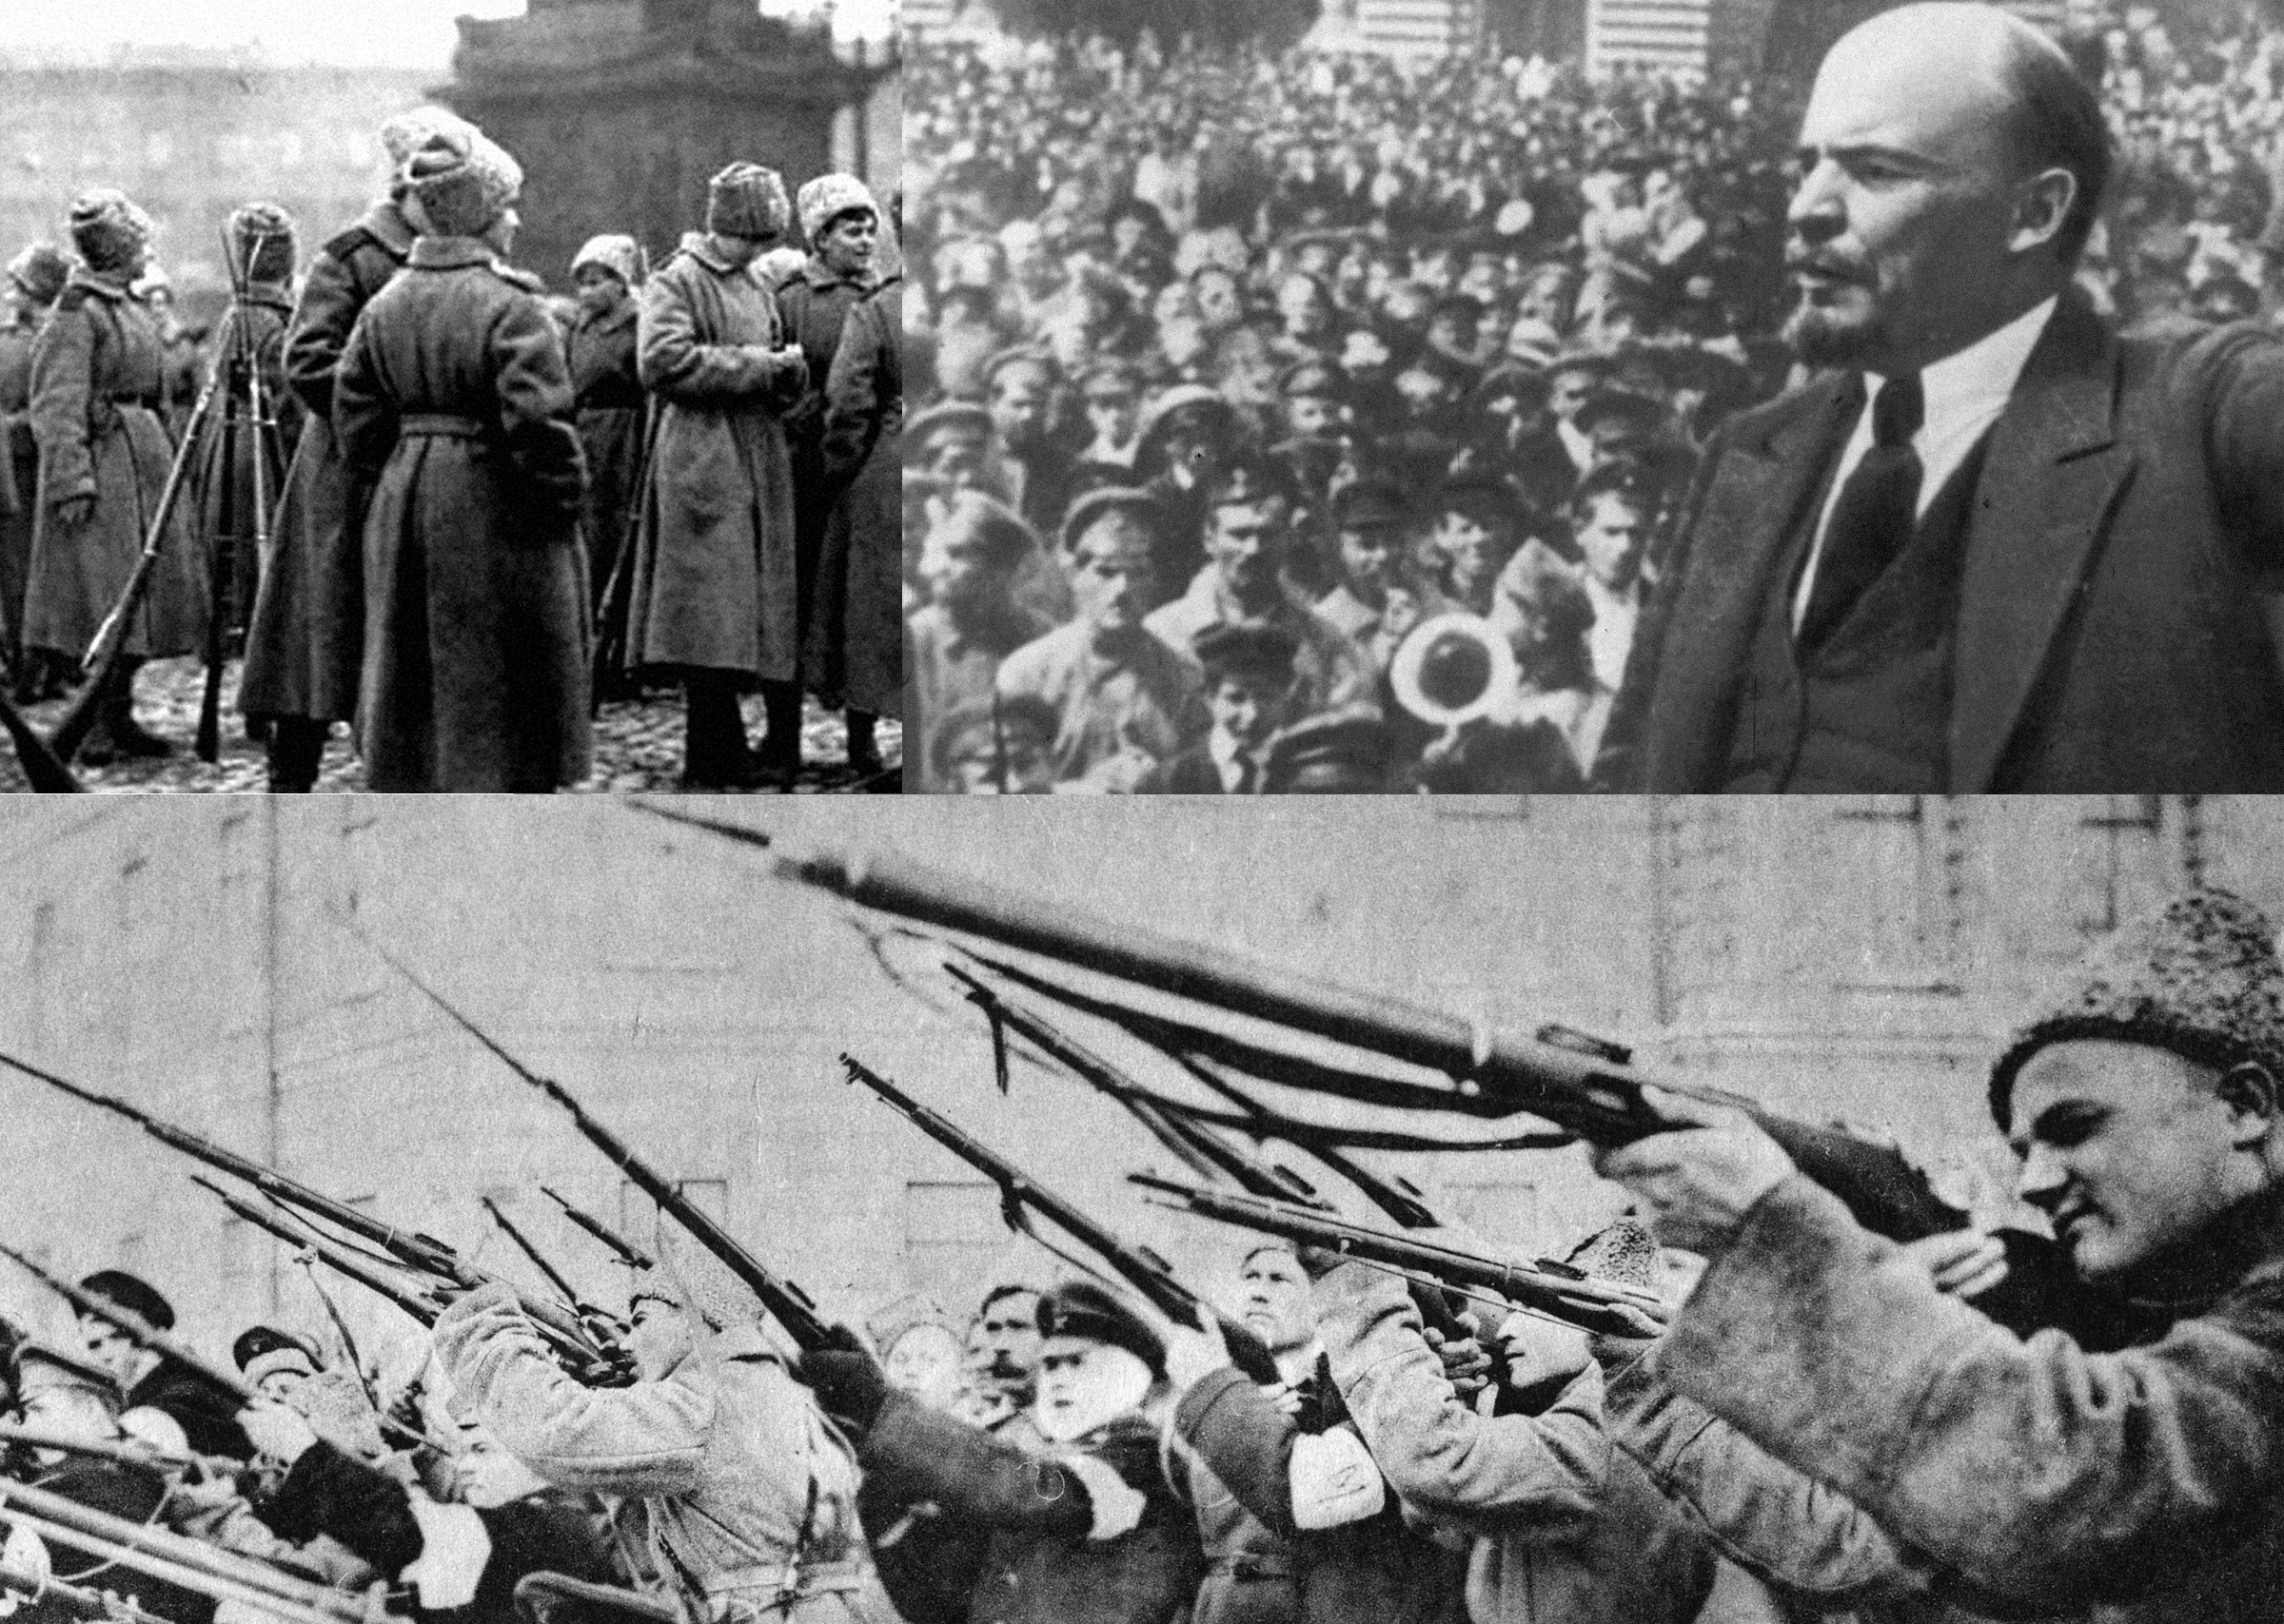 100 years ago. As a friend of mankind headed Russia